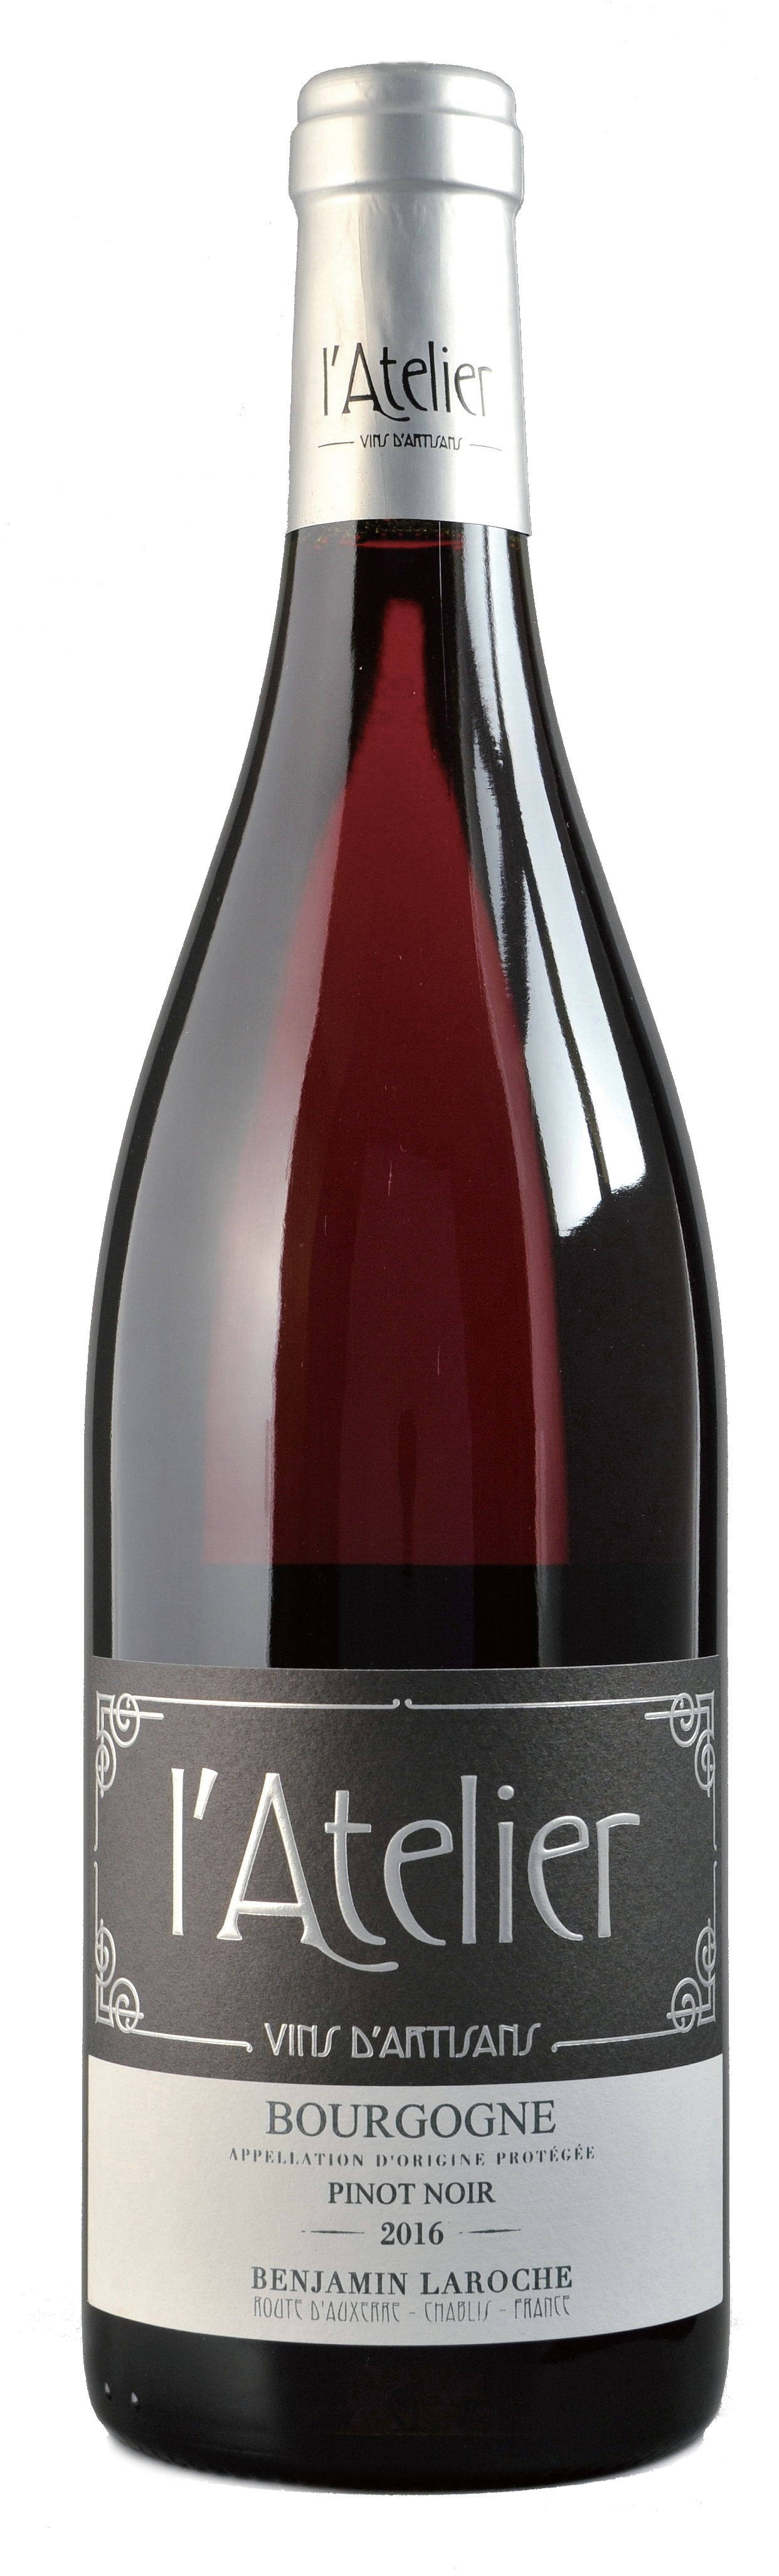 AOP Bourgogne Pinot Noir 2016, 750ml - Burgundy 布根地100% Pinot NoirNT$ 1,200陳年後的色澤呈現豐富的紫紅色,小莓果(草莓、櫻桃、黑醋栗、藍莓)等香味,伴隨著煮過後的莓果有著胡椒、肉味、及灌木叢等氣息。口感上有著良好結構且活潑感,柔順圓潤,單寧與濃郁的水果香氣完美協調。有著令人欽佩的綿長尾韻。Rich purple garnet colour turning deep ruby when ageing. On the nose, aromas of small berries (strawberry, cherry, blackcurrant, blueberry) evolve then on a cooked prune with pepper, animal and underwood notes. Vivid in the mouth with a good structure, it is also supple and round. Its tannins and intense fruits notes are in full harmony. In the mouth, secondary aromas are developing with a discreet approach but an admirable finish.